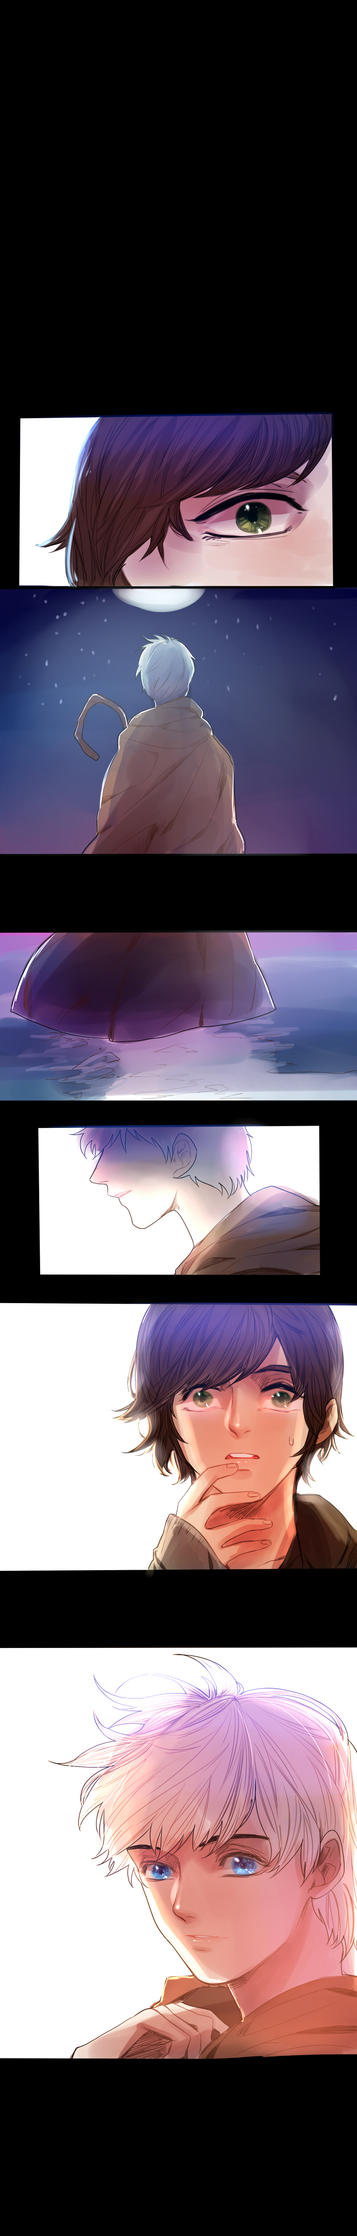 Jack frost and Hiccup! by hyechi